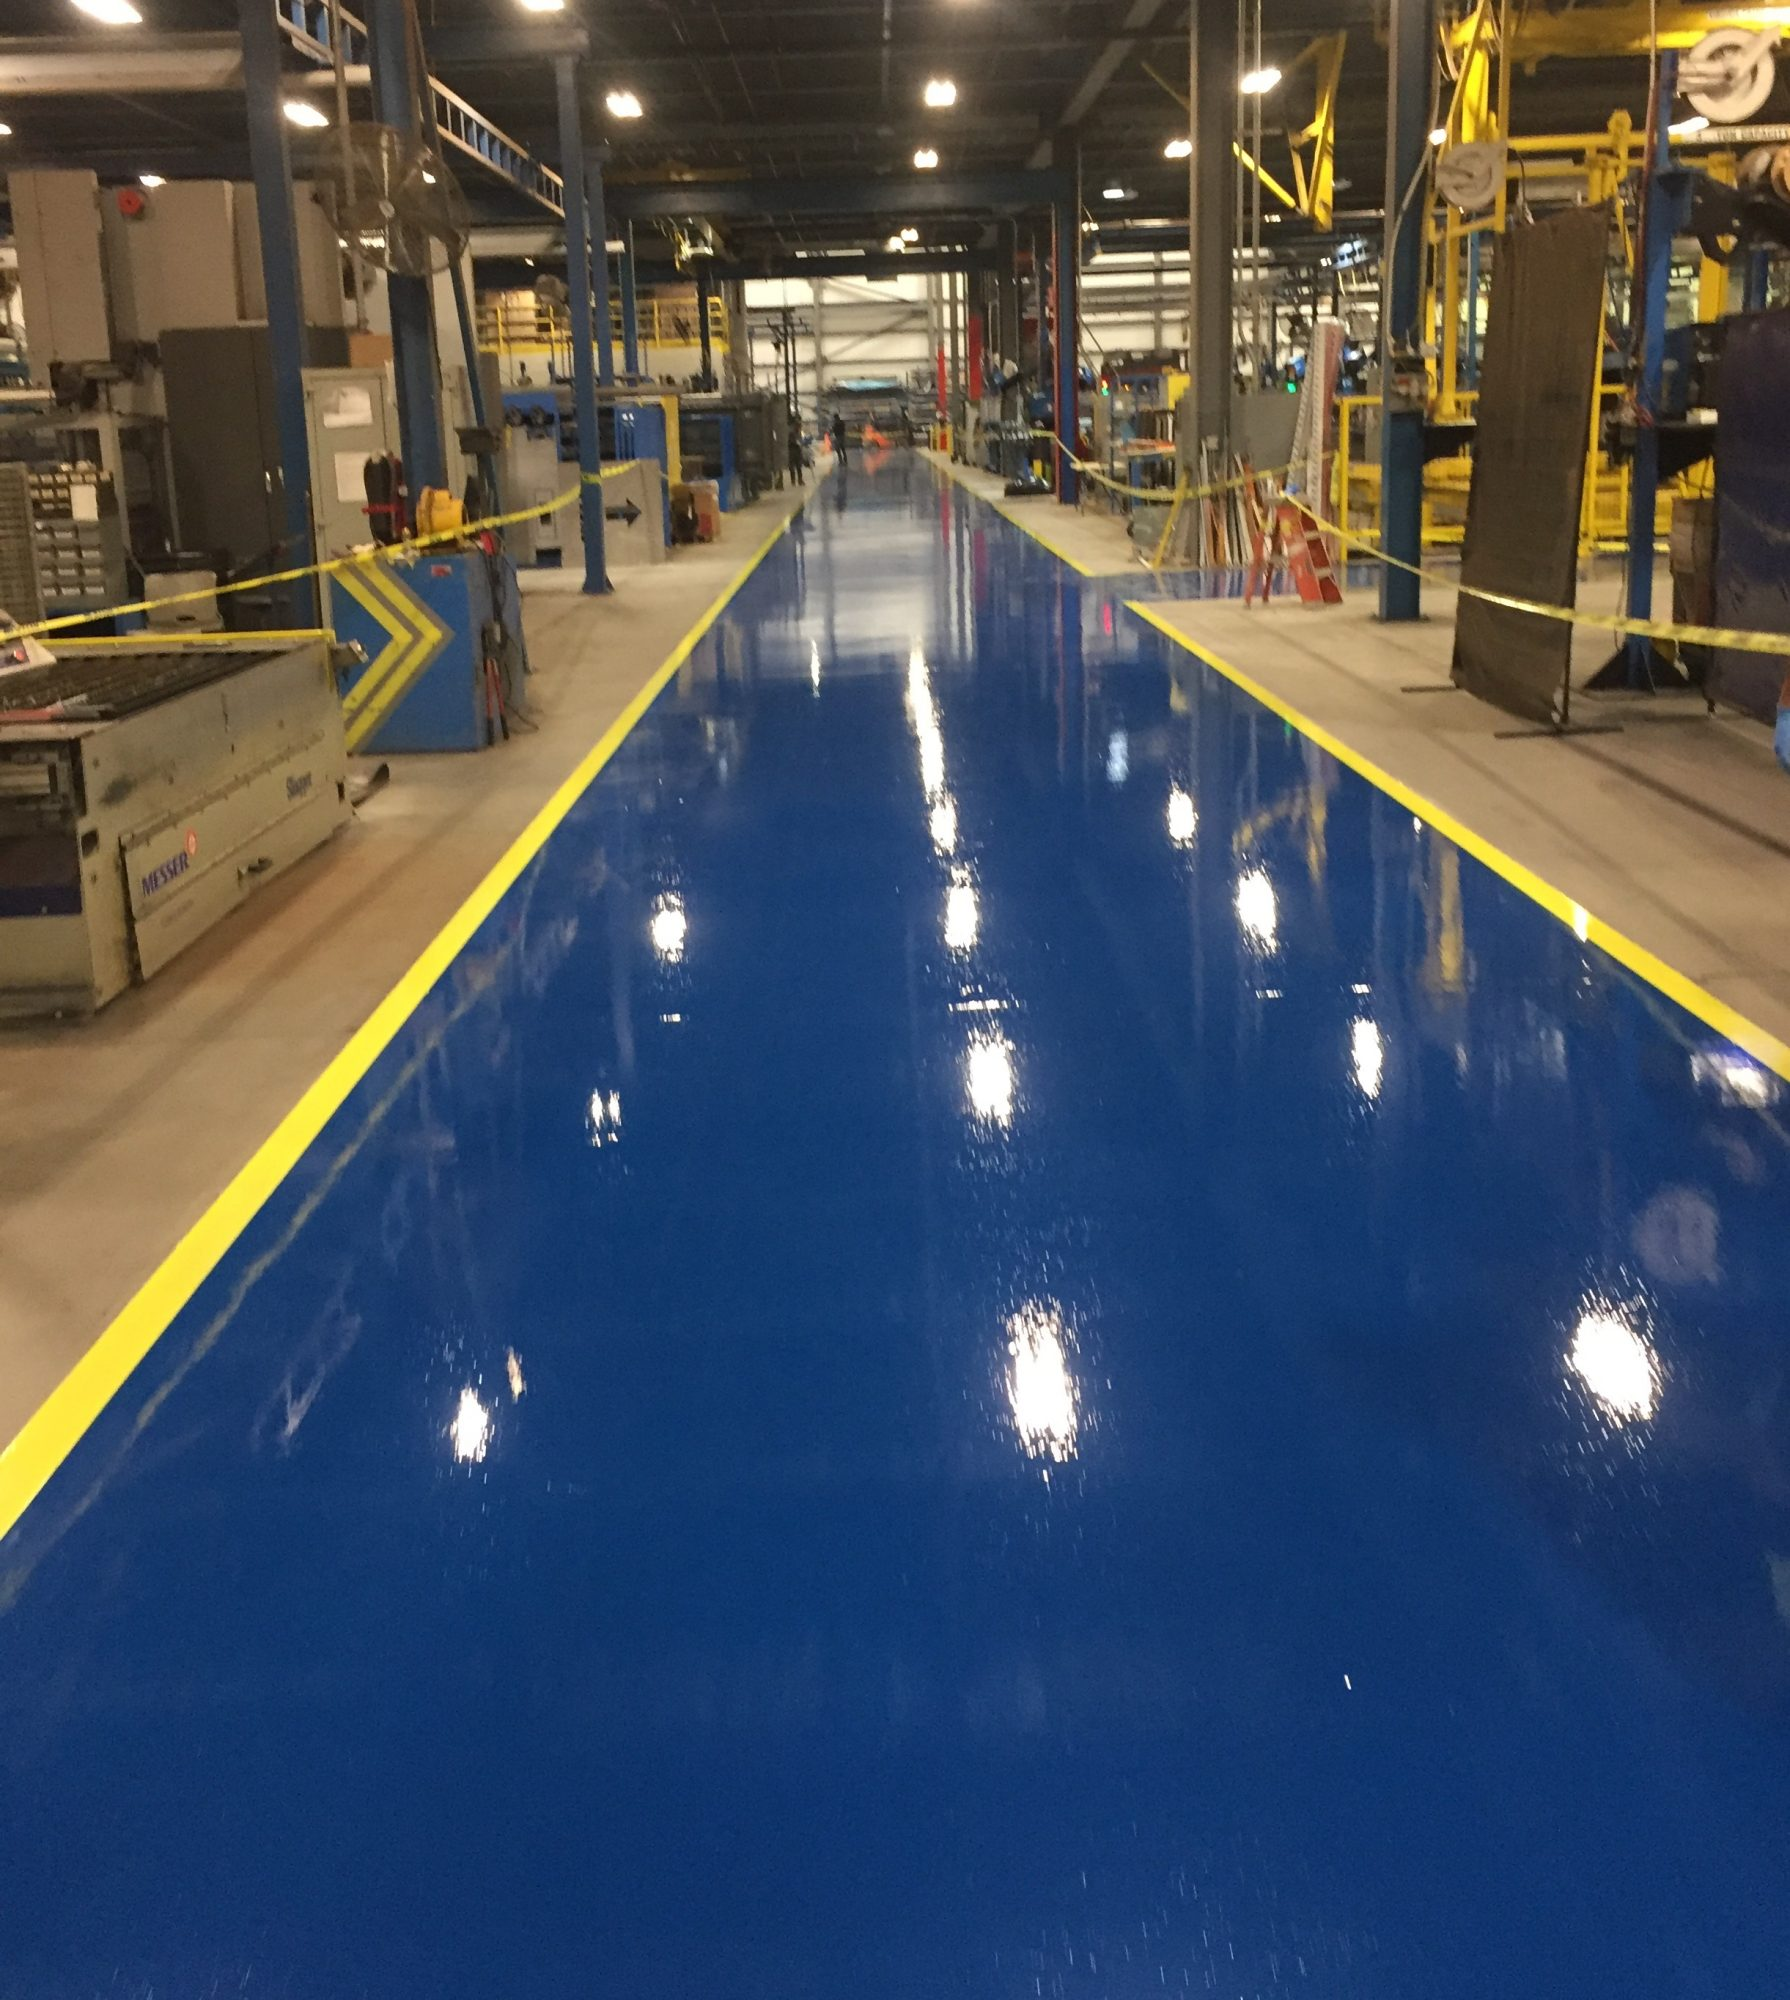 safety striping, epoxy coating aisles, industrial aisles, epoxy floor coatings